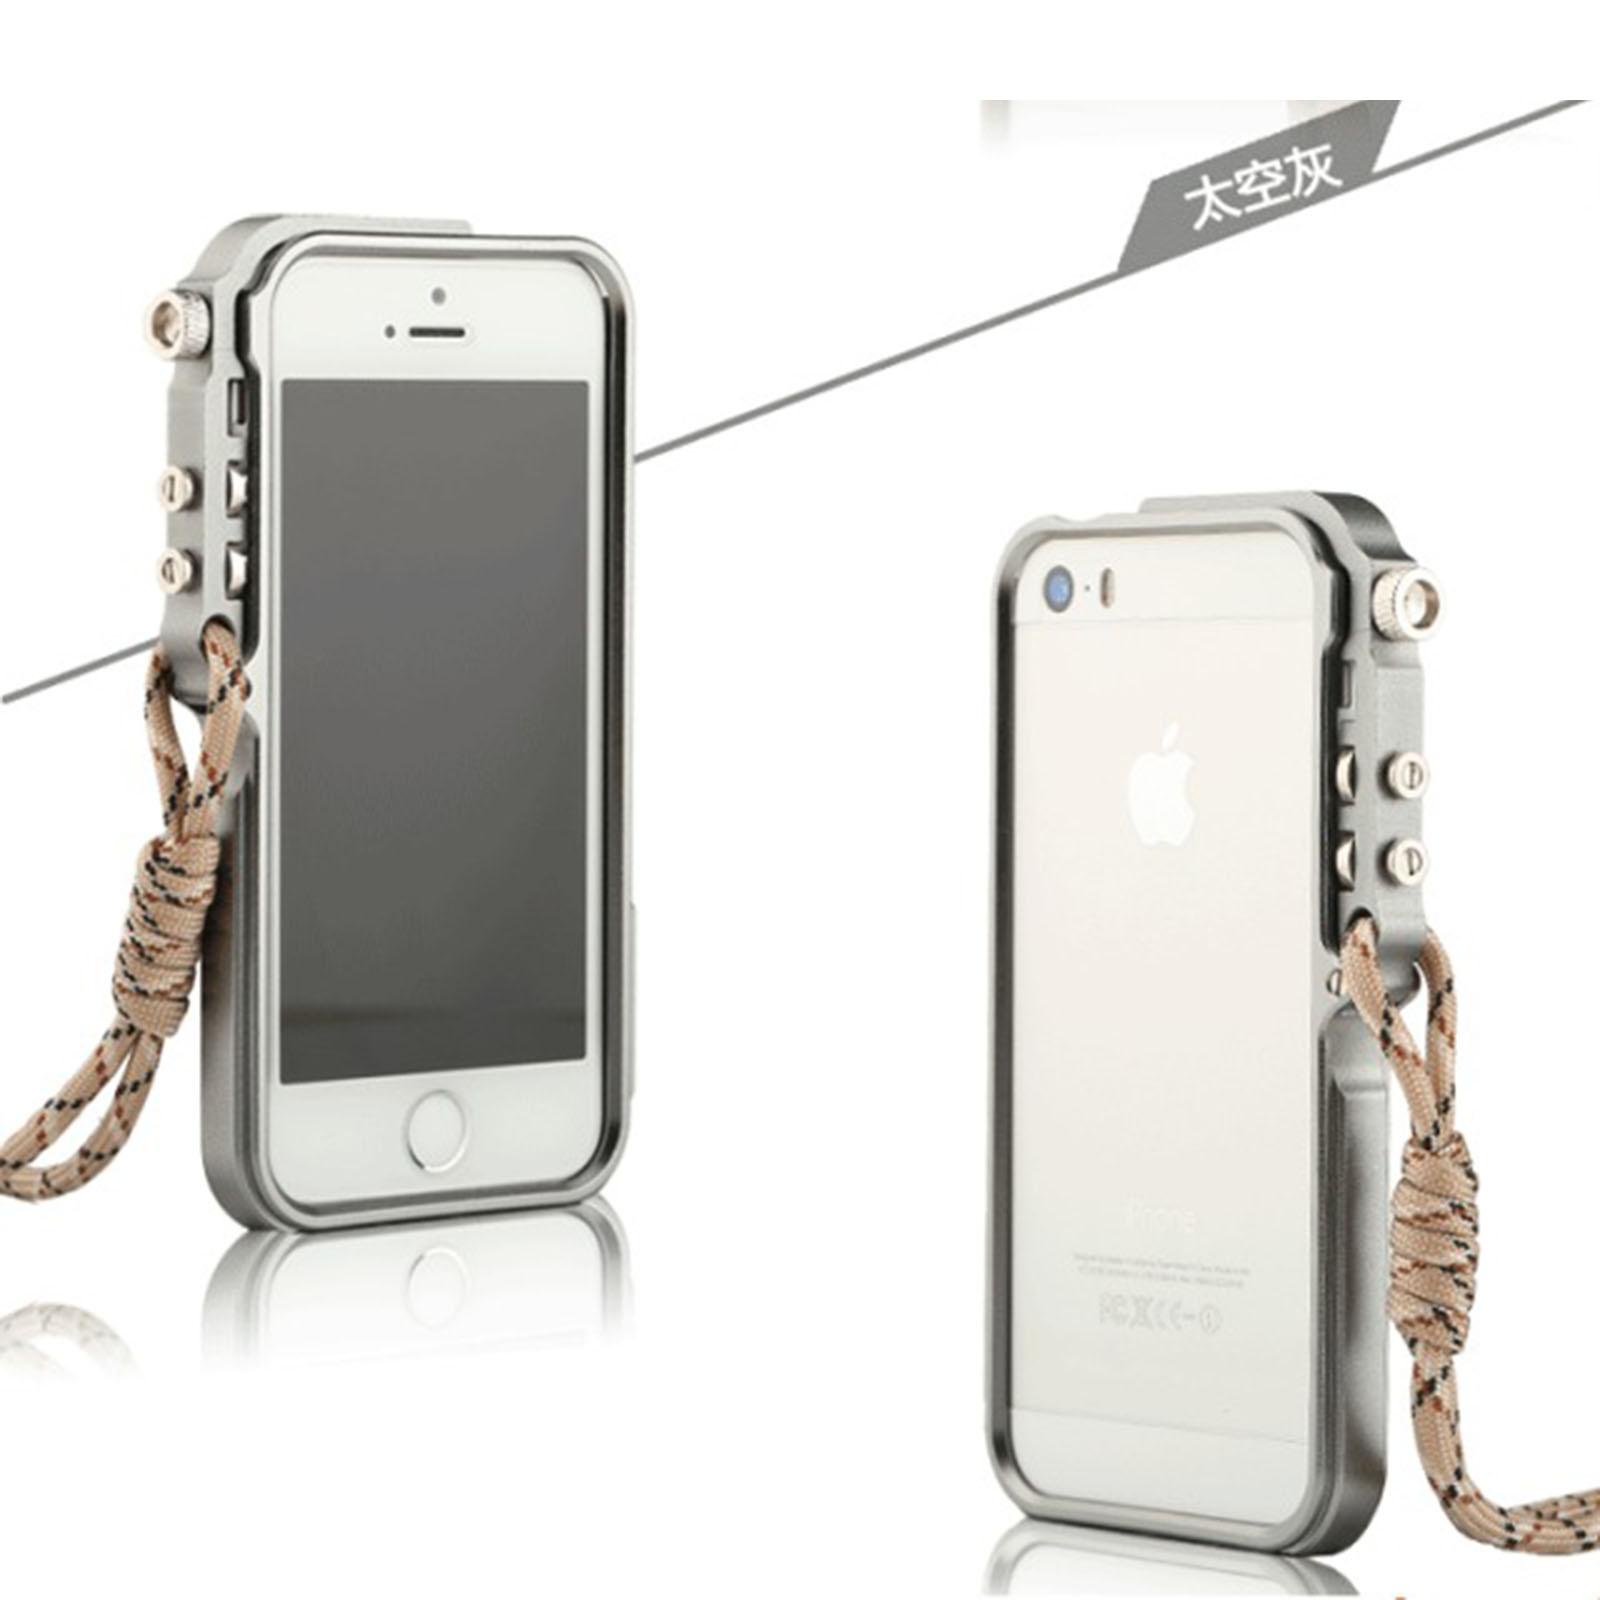 High Quality Aluminum Cool Trigger Style Case Frame For Apple iPhone 6 6s 4.7″ With Straps Hard Metal Guard Impact Bumper Cases